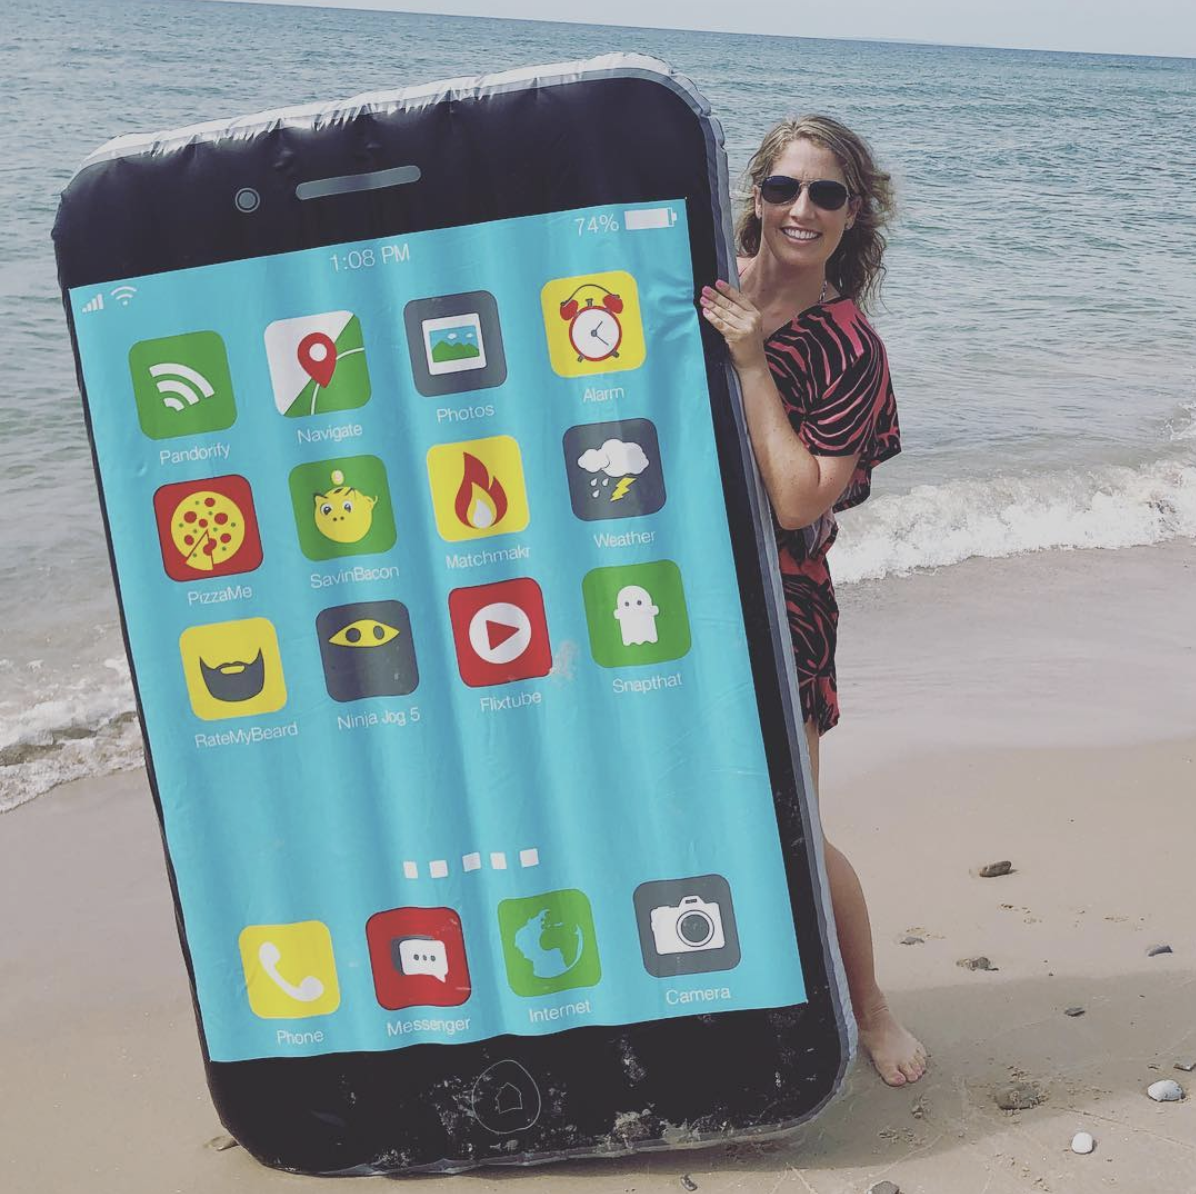 Phone pool and beach float for technology lovers